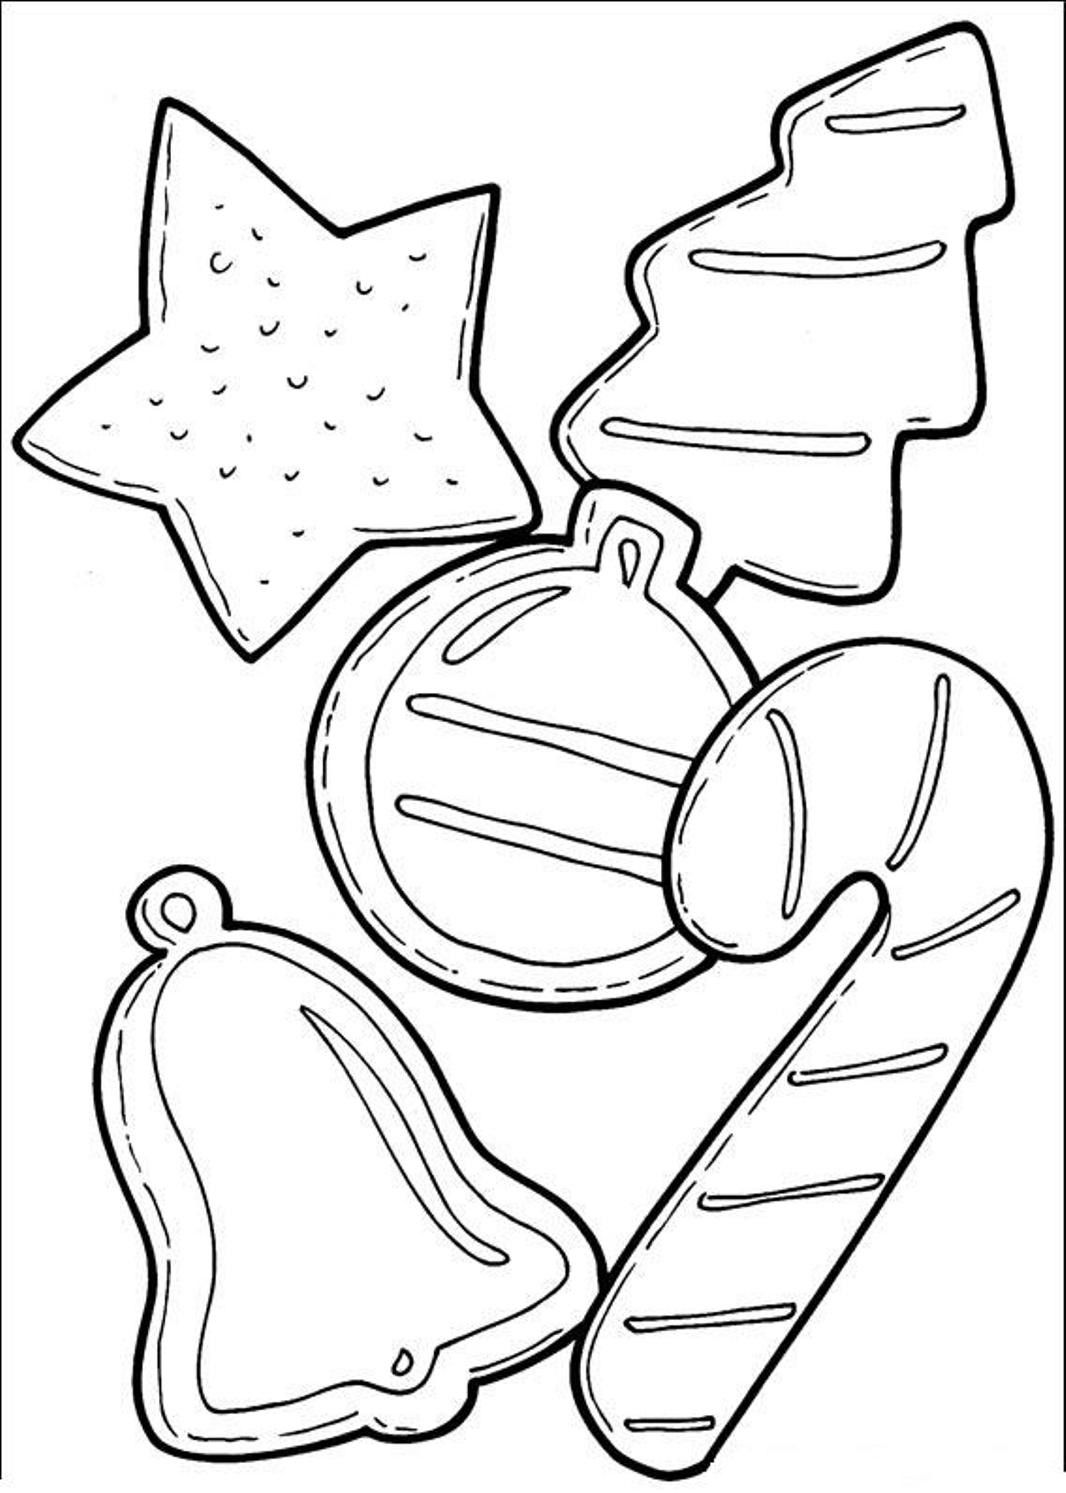 Printable Cookies Coloring Pages Candy Coloring Pages Christmas Coloring Sheets Cool Coloring Pages